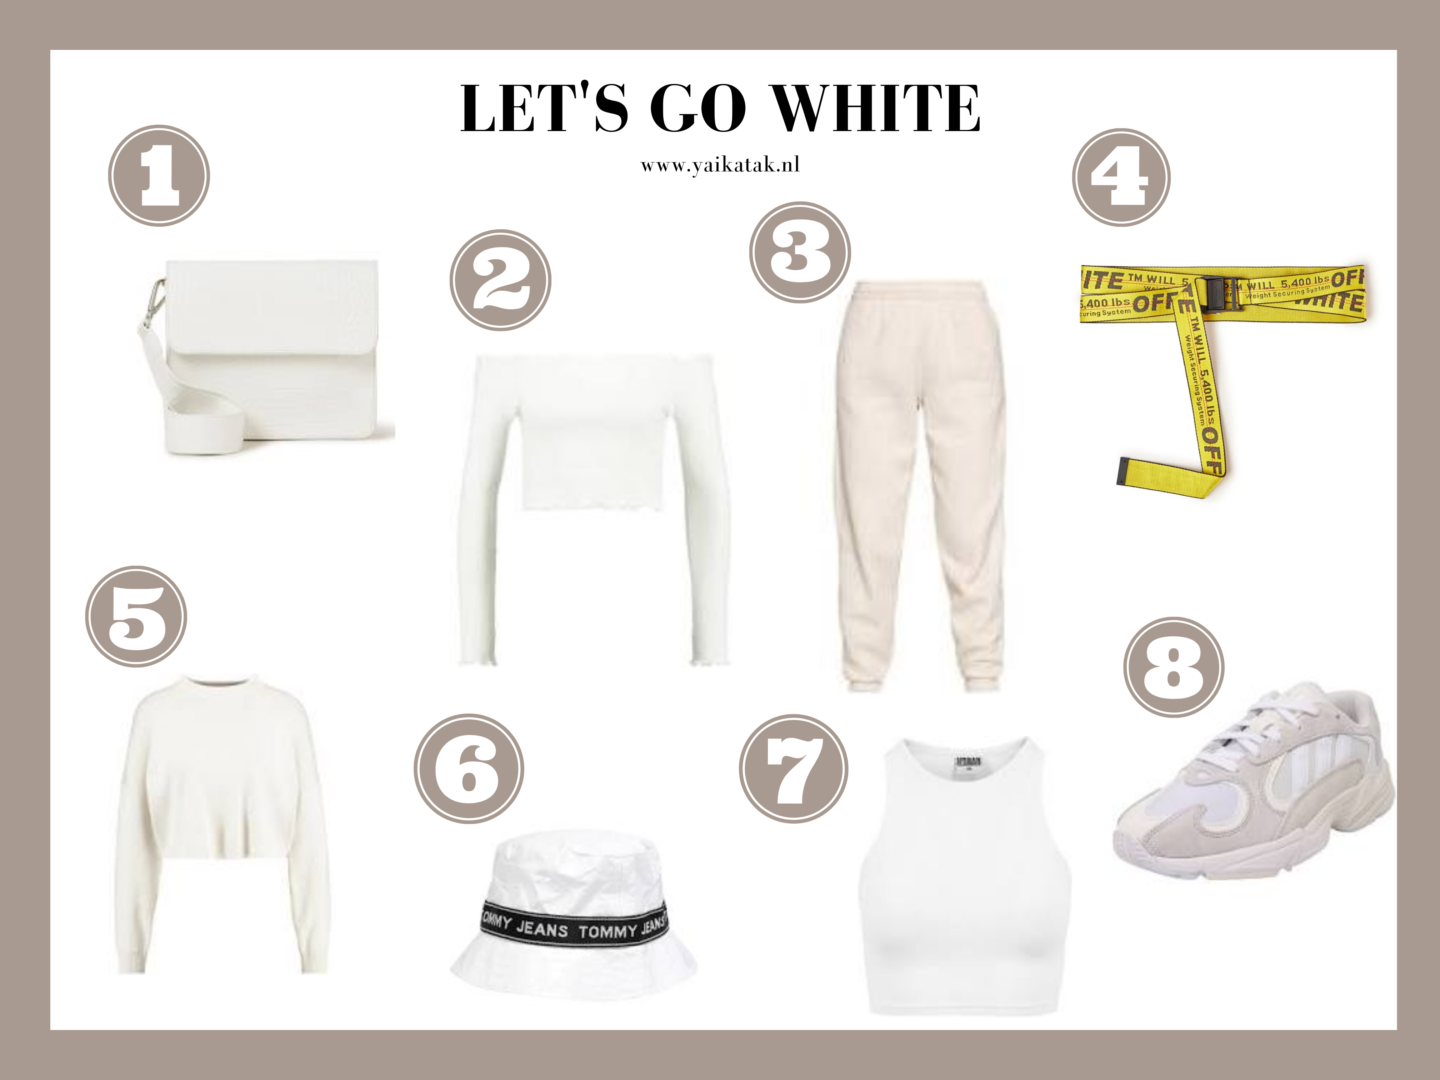 Mijn favoriete witte fashion musthaves van dit moment